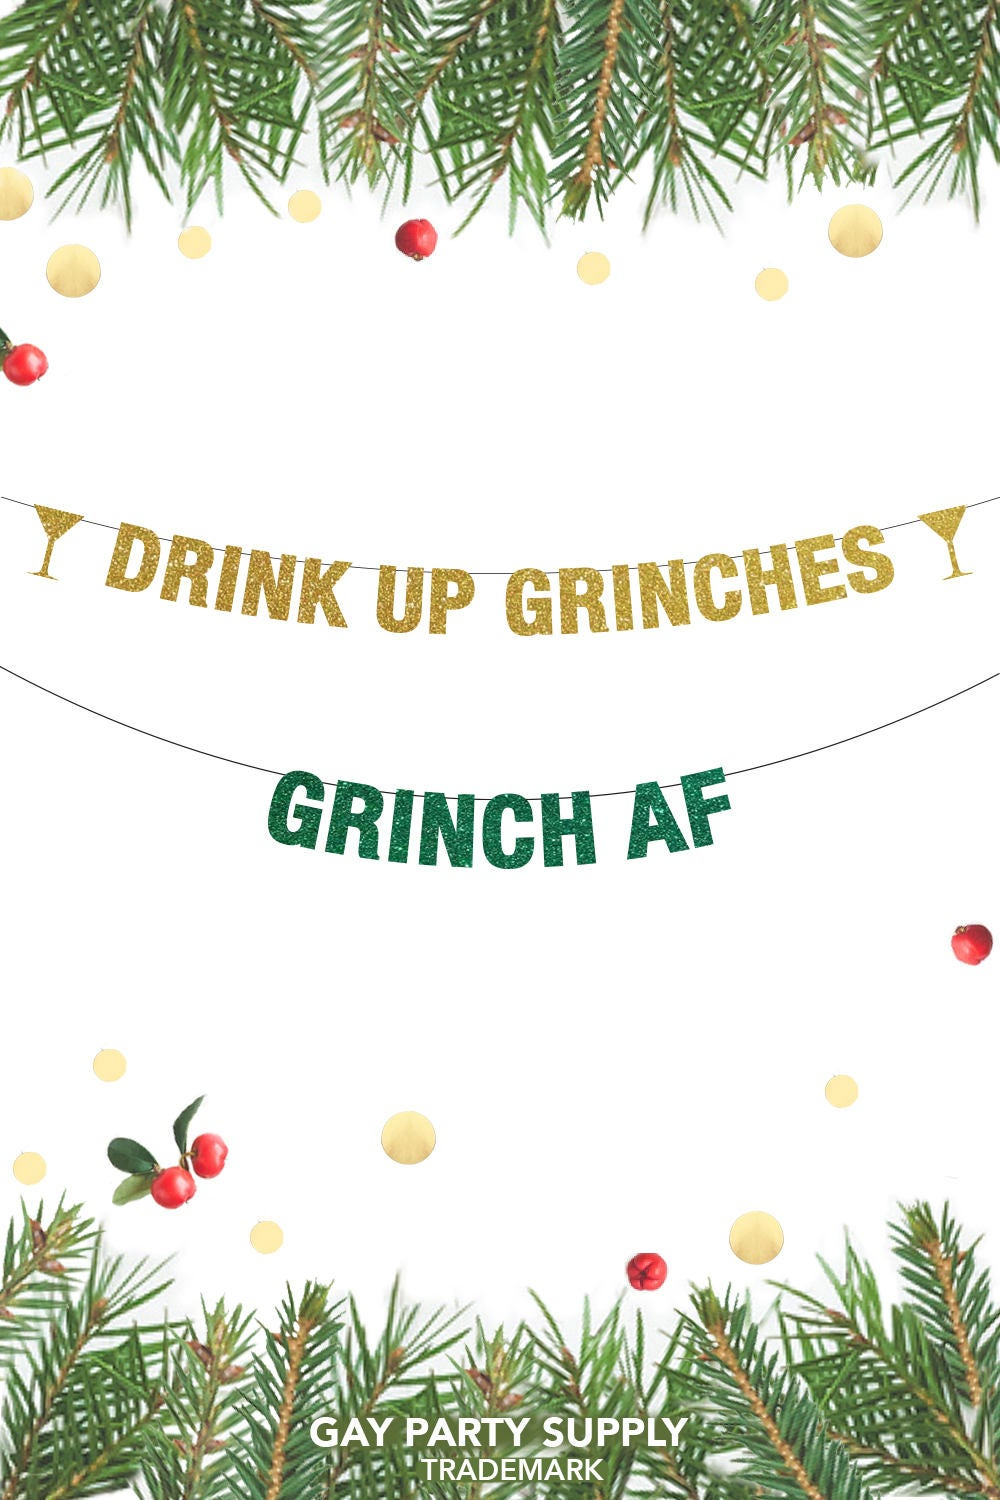 Grinch AF Banner, Drink Up Grinches Banner, Christmas Banner ...